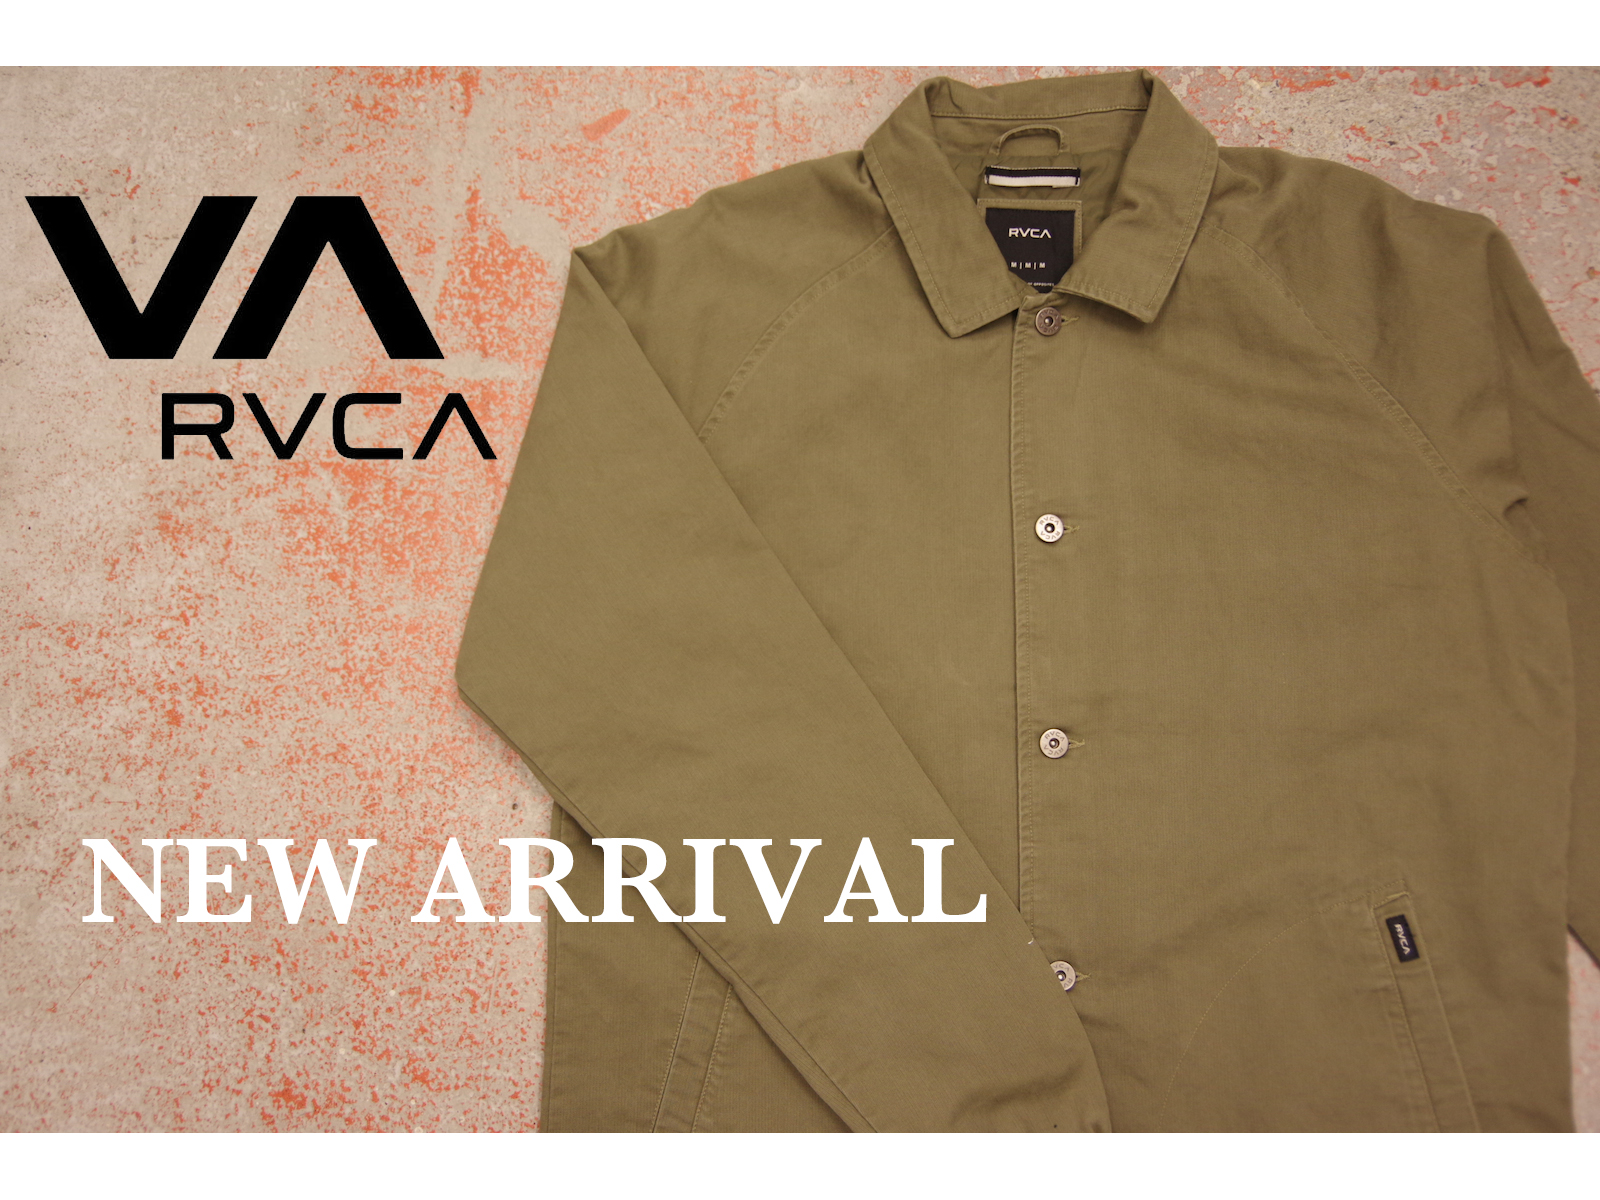 NEW ARRIVAL: RVCA – AUTUMN/WINTER 2016